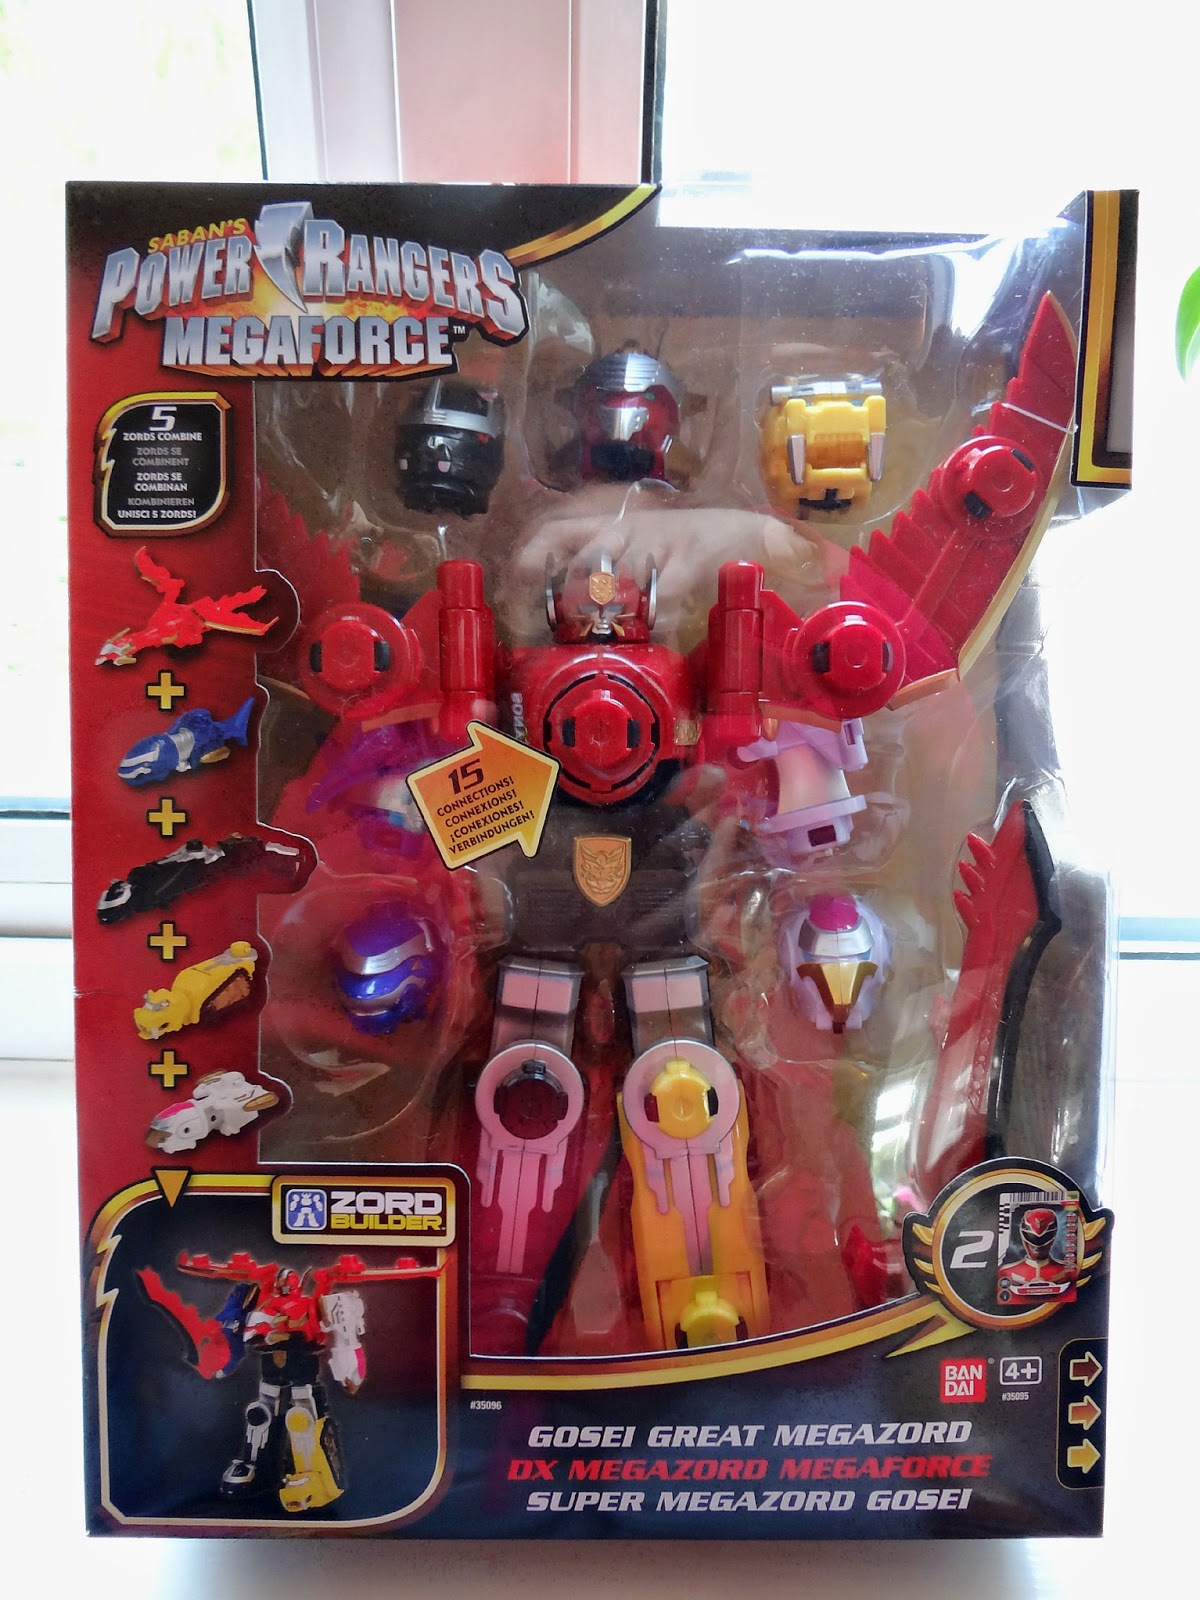 Bandai Power Rangers, Power Rangers Megaforce, Megazord